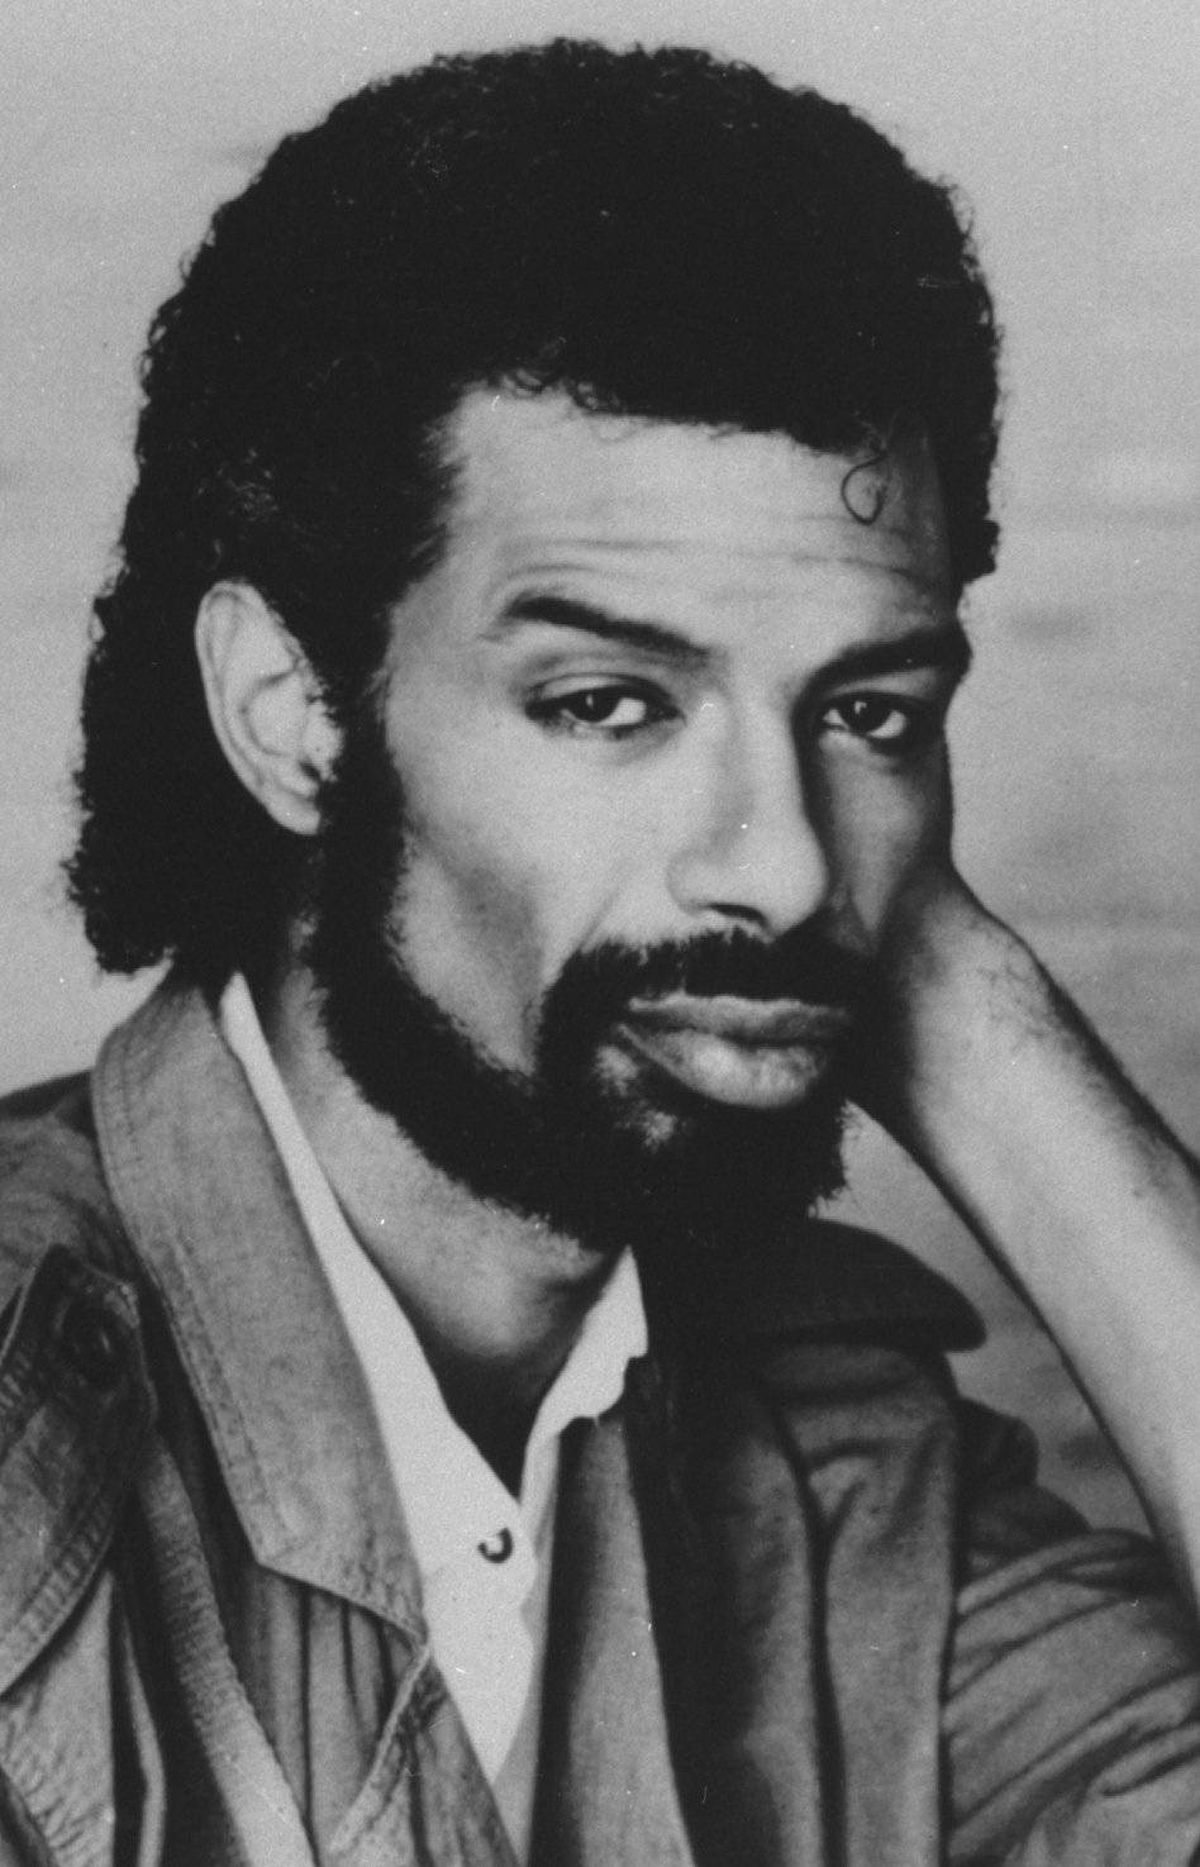 Poet-musician Gil Scott-Heron dies (unknown cause) at age 62 Notable for his 1970 poem-song The Revolution Will Not Be Televised, the rap-music antecedent was an elegant militant who lived and commented on the black American experience. His last album was 2010's bluesy I'm New Here – last words from an artist whose revolution wasn't televised (and not even YouTubed much), but was duly recognized.